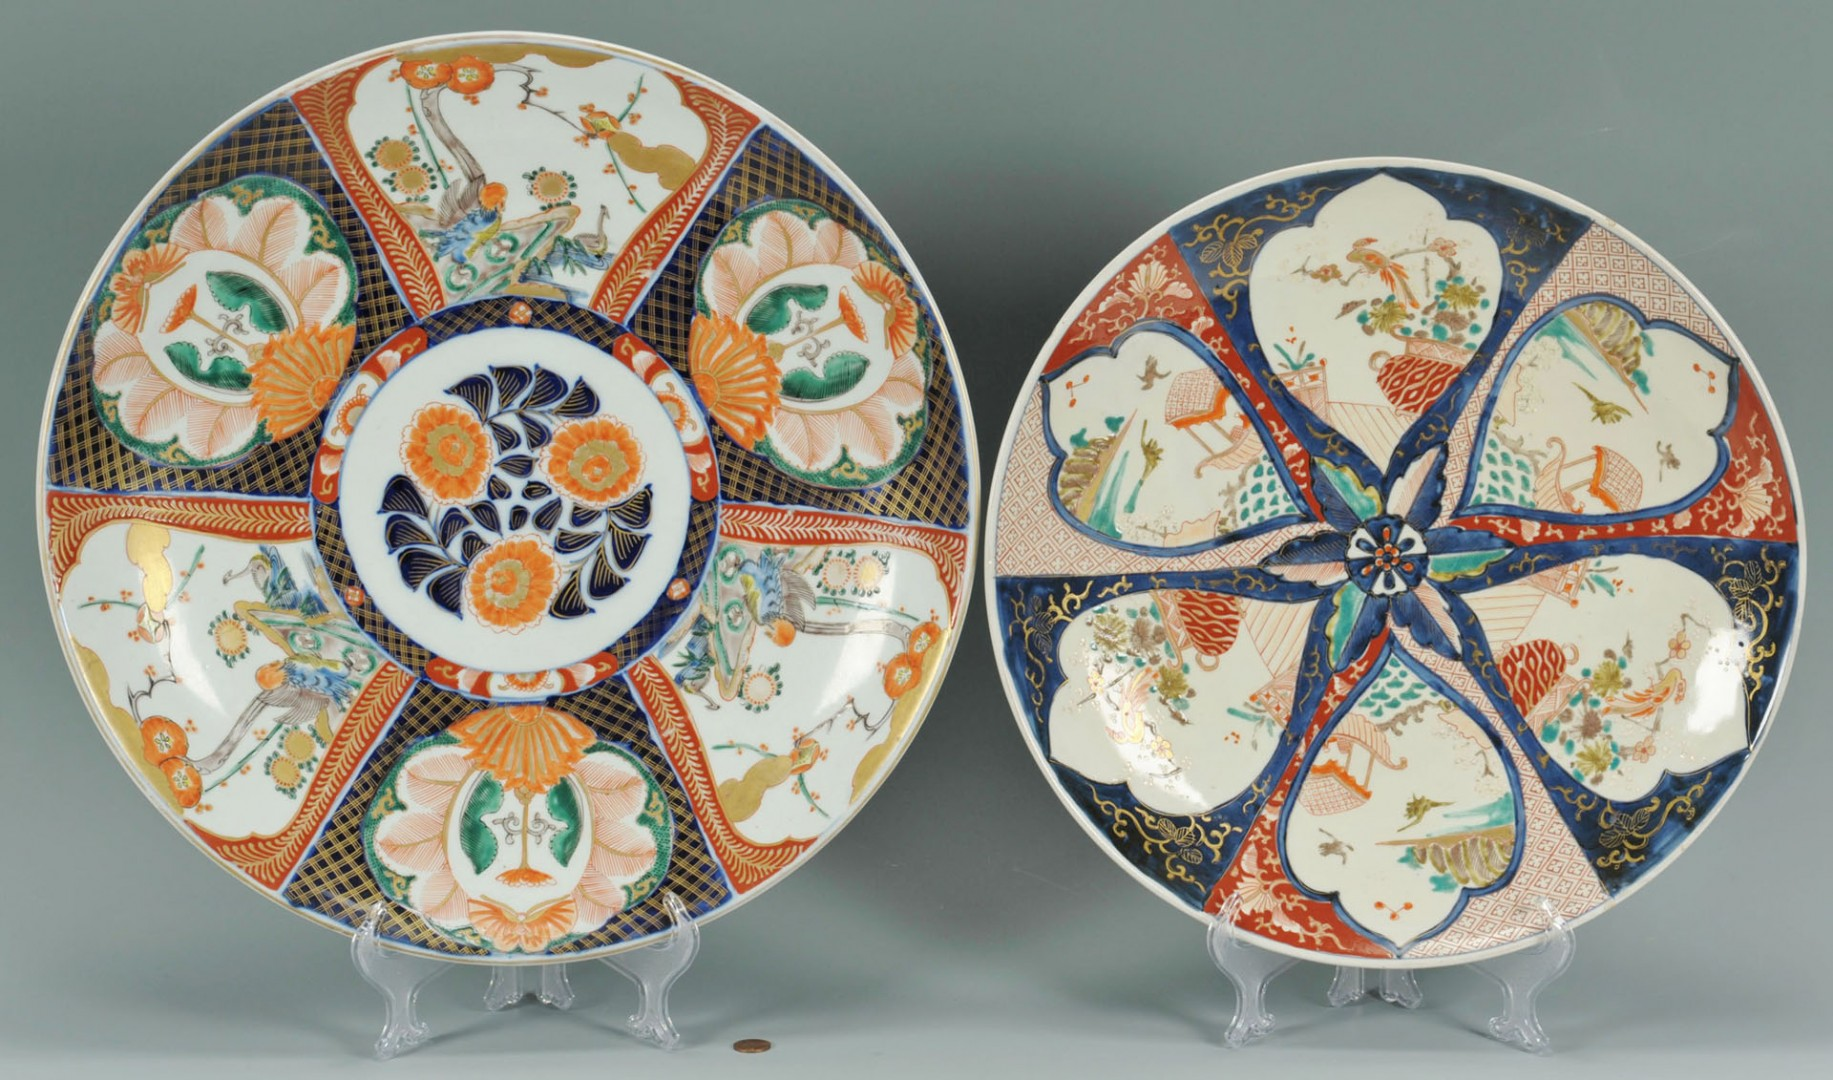 Lot 246: 2 large Japanese Imari Chargers, 19th c.